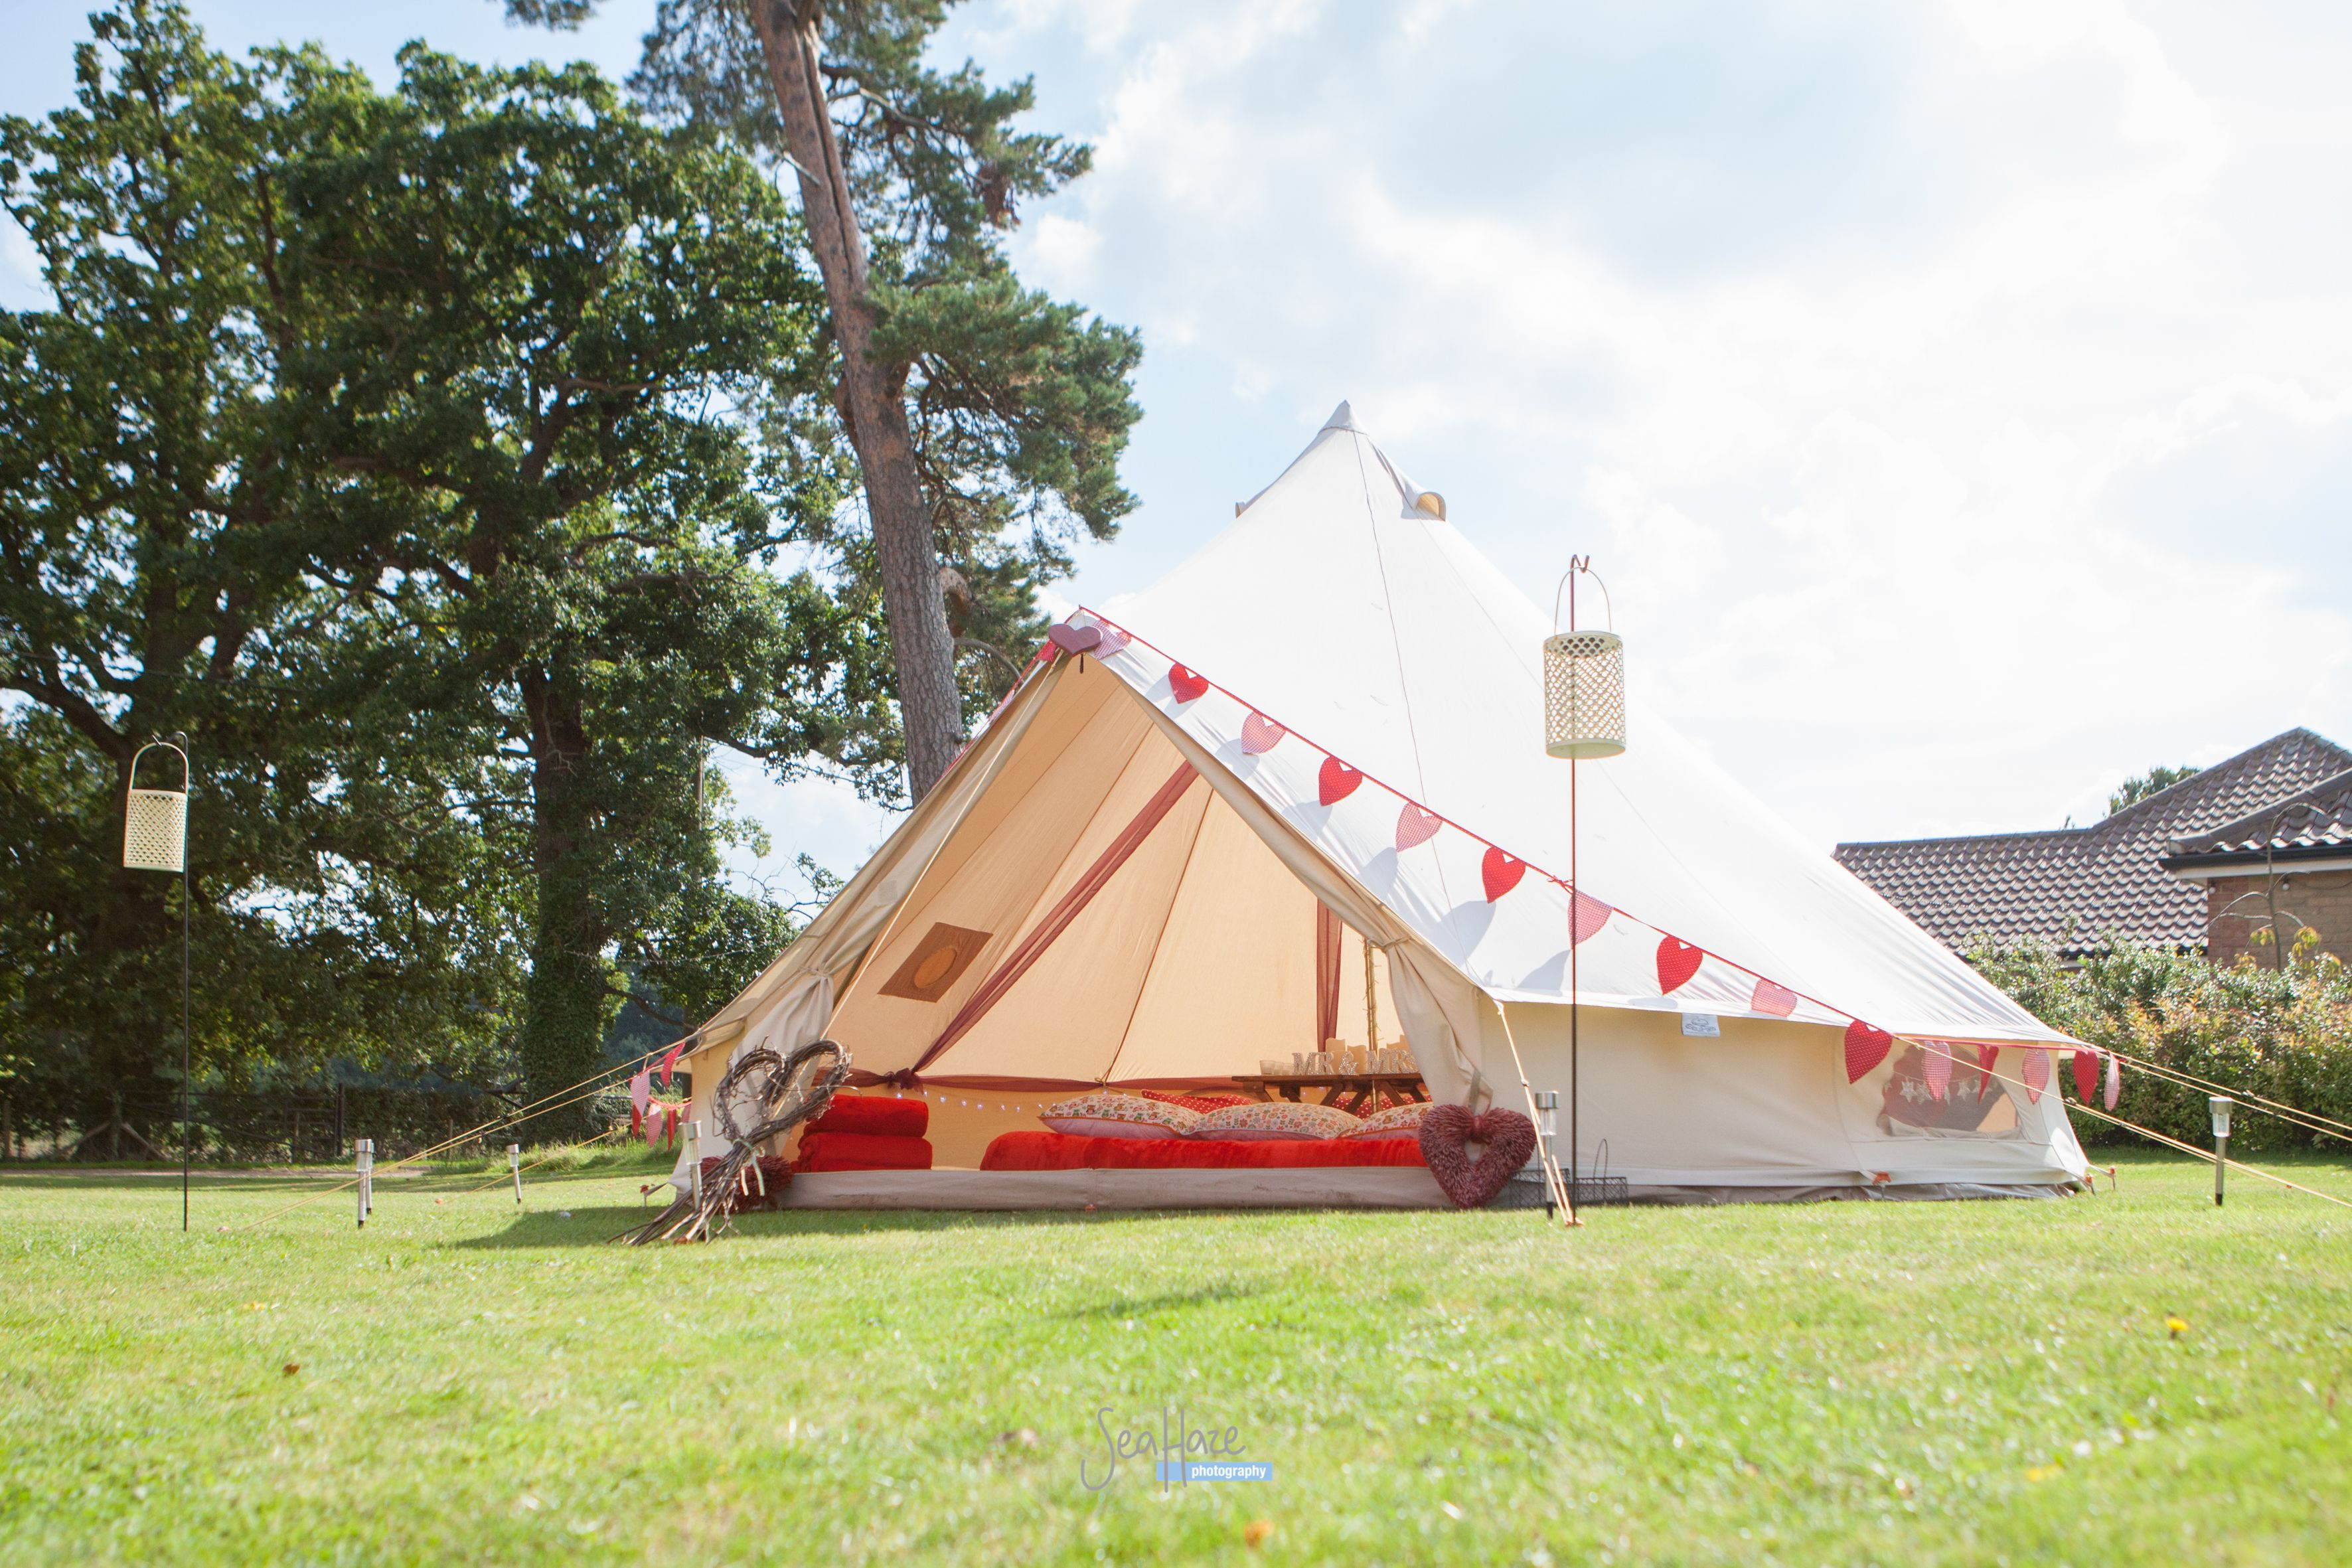 2Posh2Pitch | Bell Tent Hire u0026 Gl&ing in North Norfolk & 2Posh2Pitch | Bell Tent Hire u0026 Glamping in North Norfolk | Wedding ...